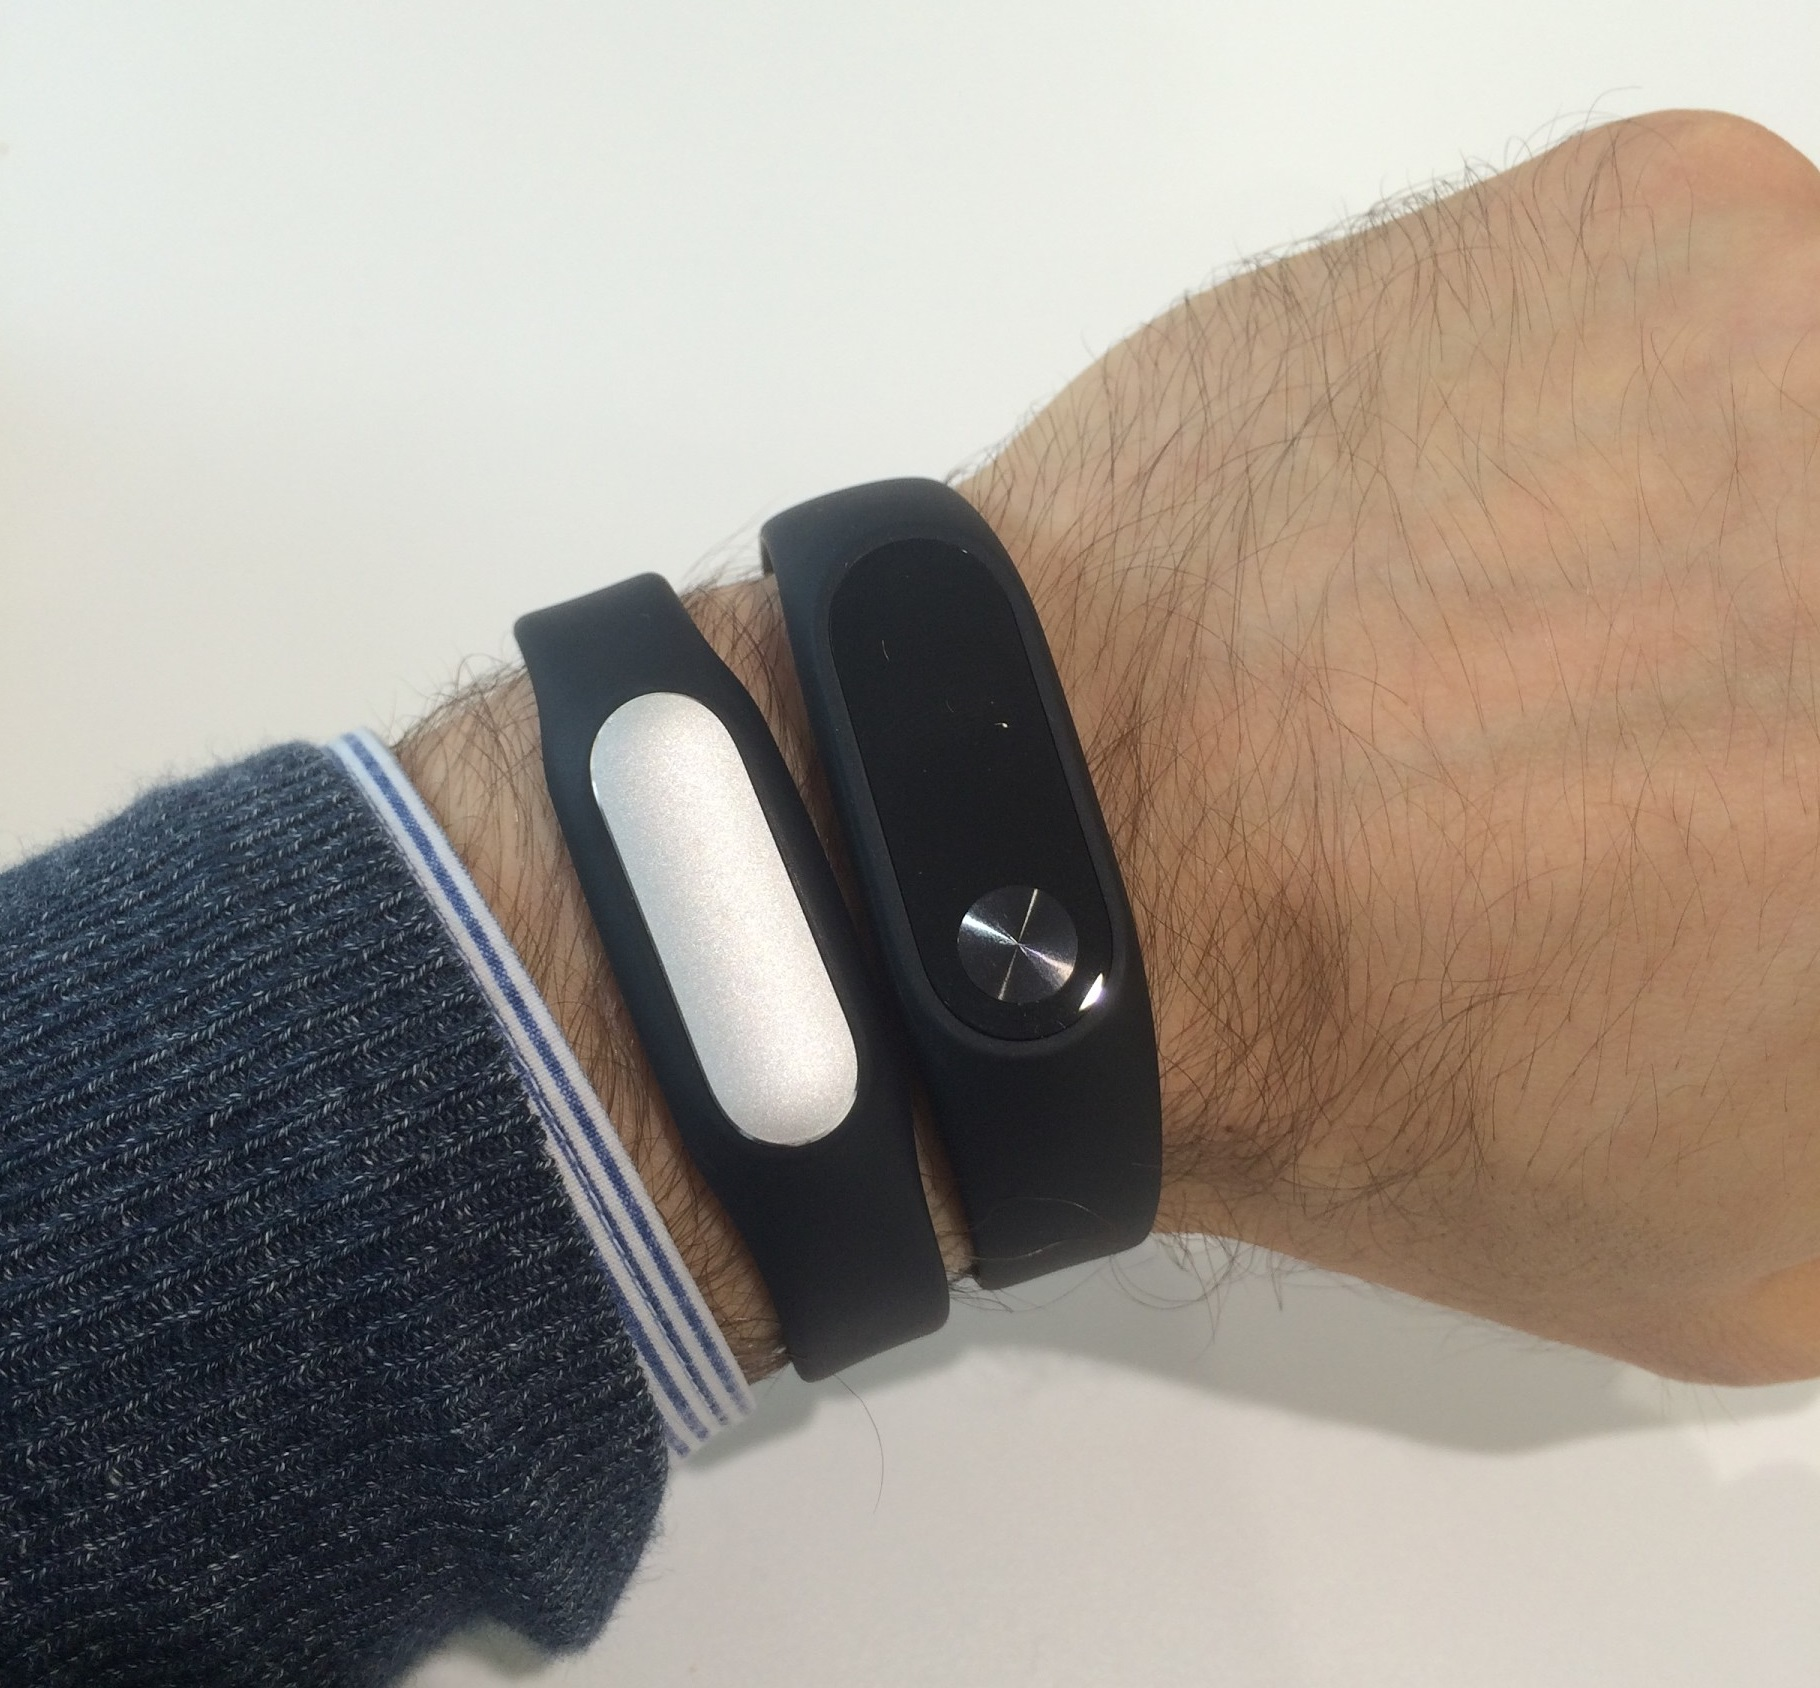 Xiaomi Mi Band 2 - early impressions (4)